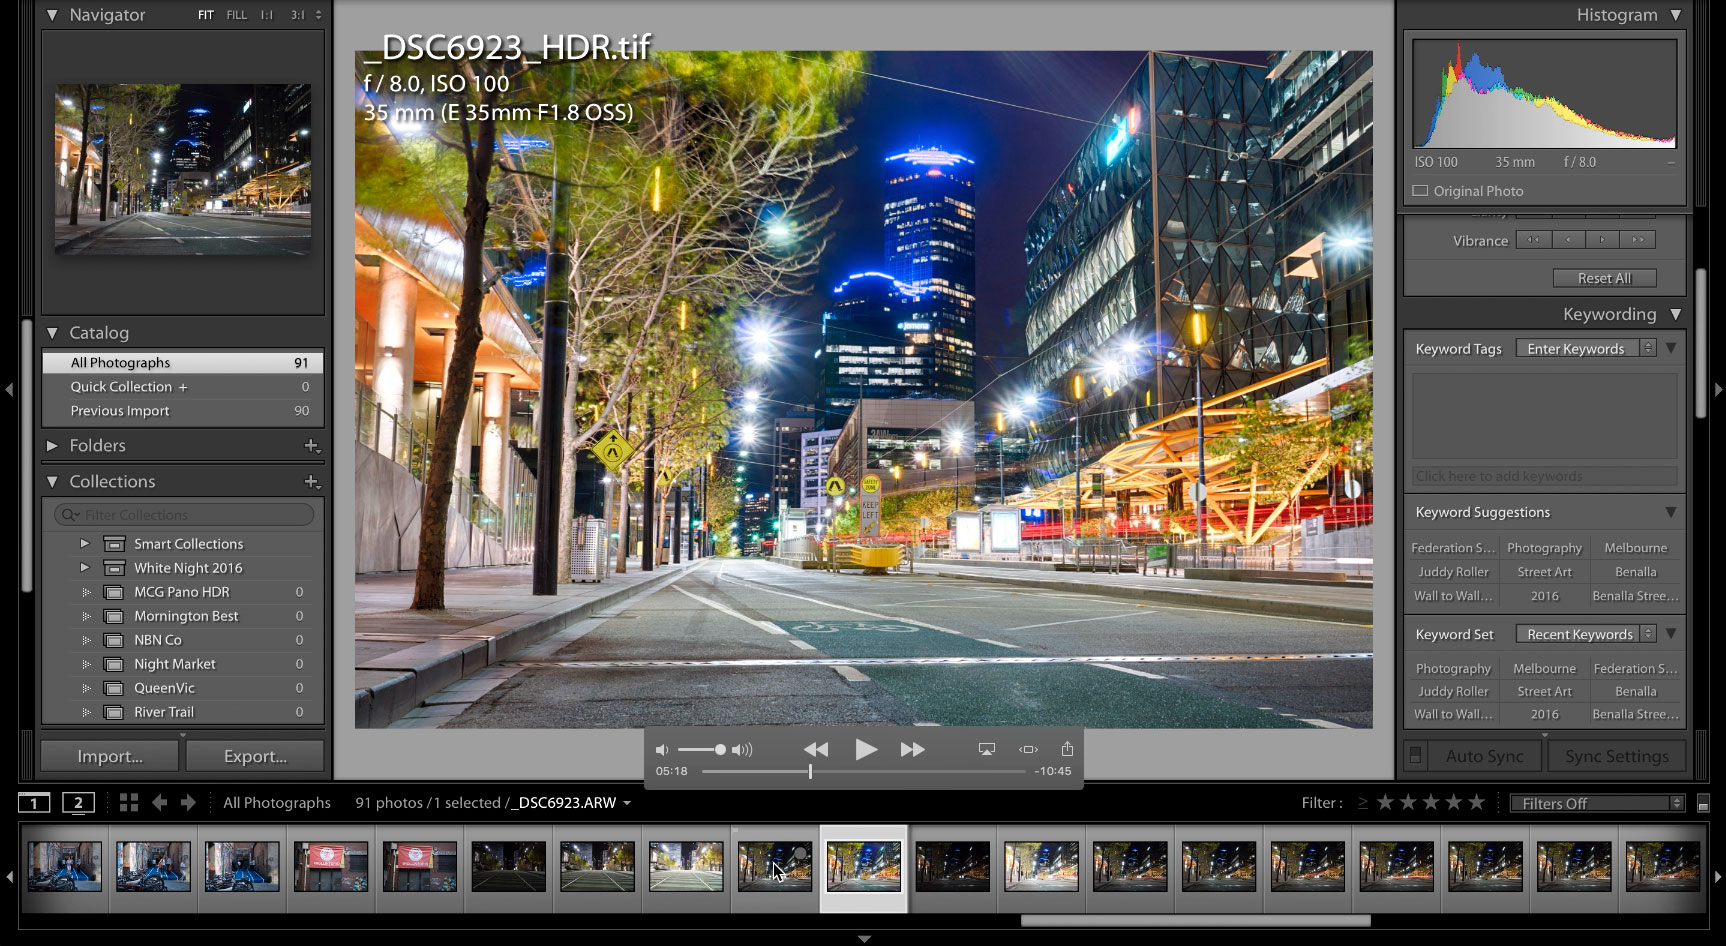 Building an Image - HDR and Light Trails